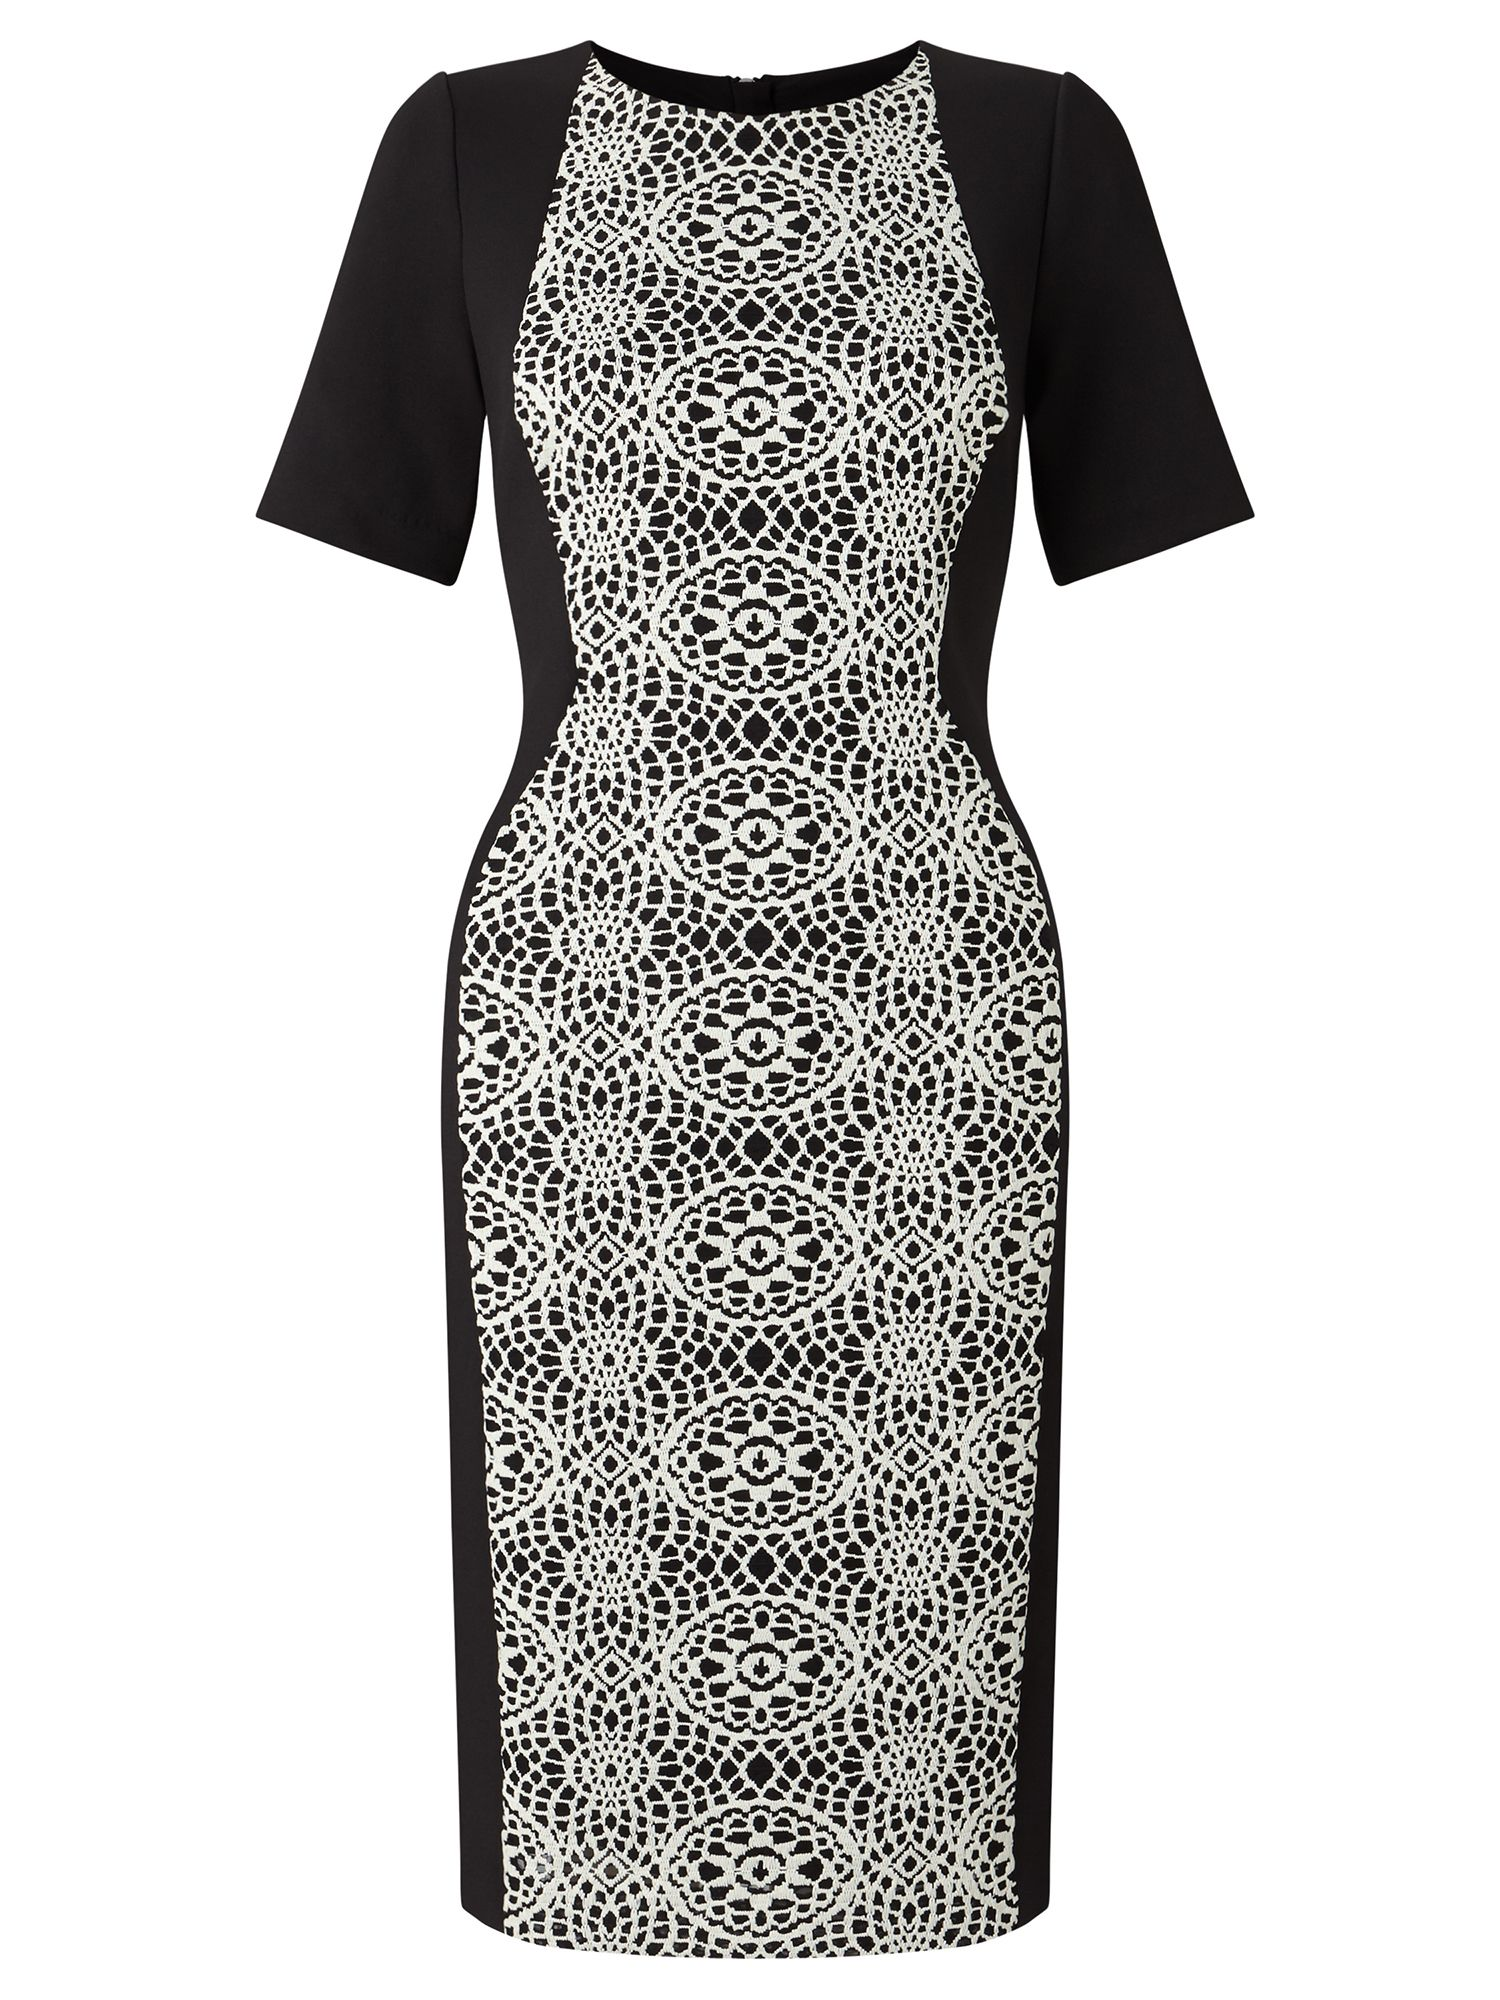 Adrianna Papell Embroidered Panel Sheath Dress, Multi-Coloured